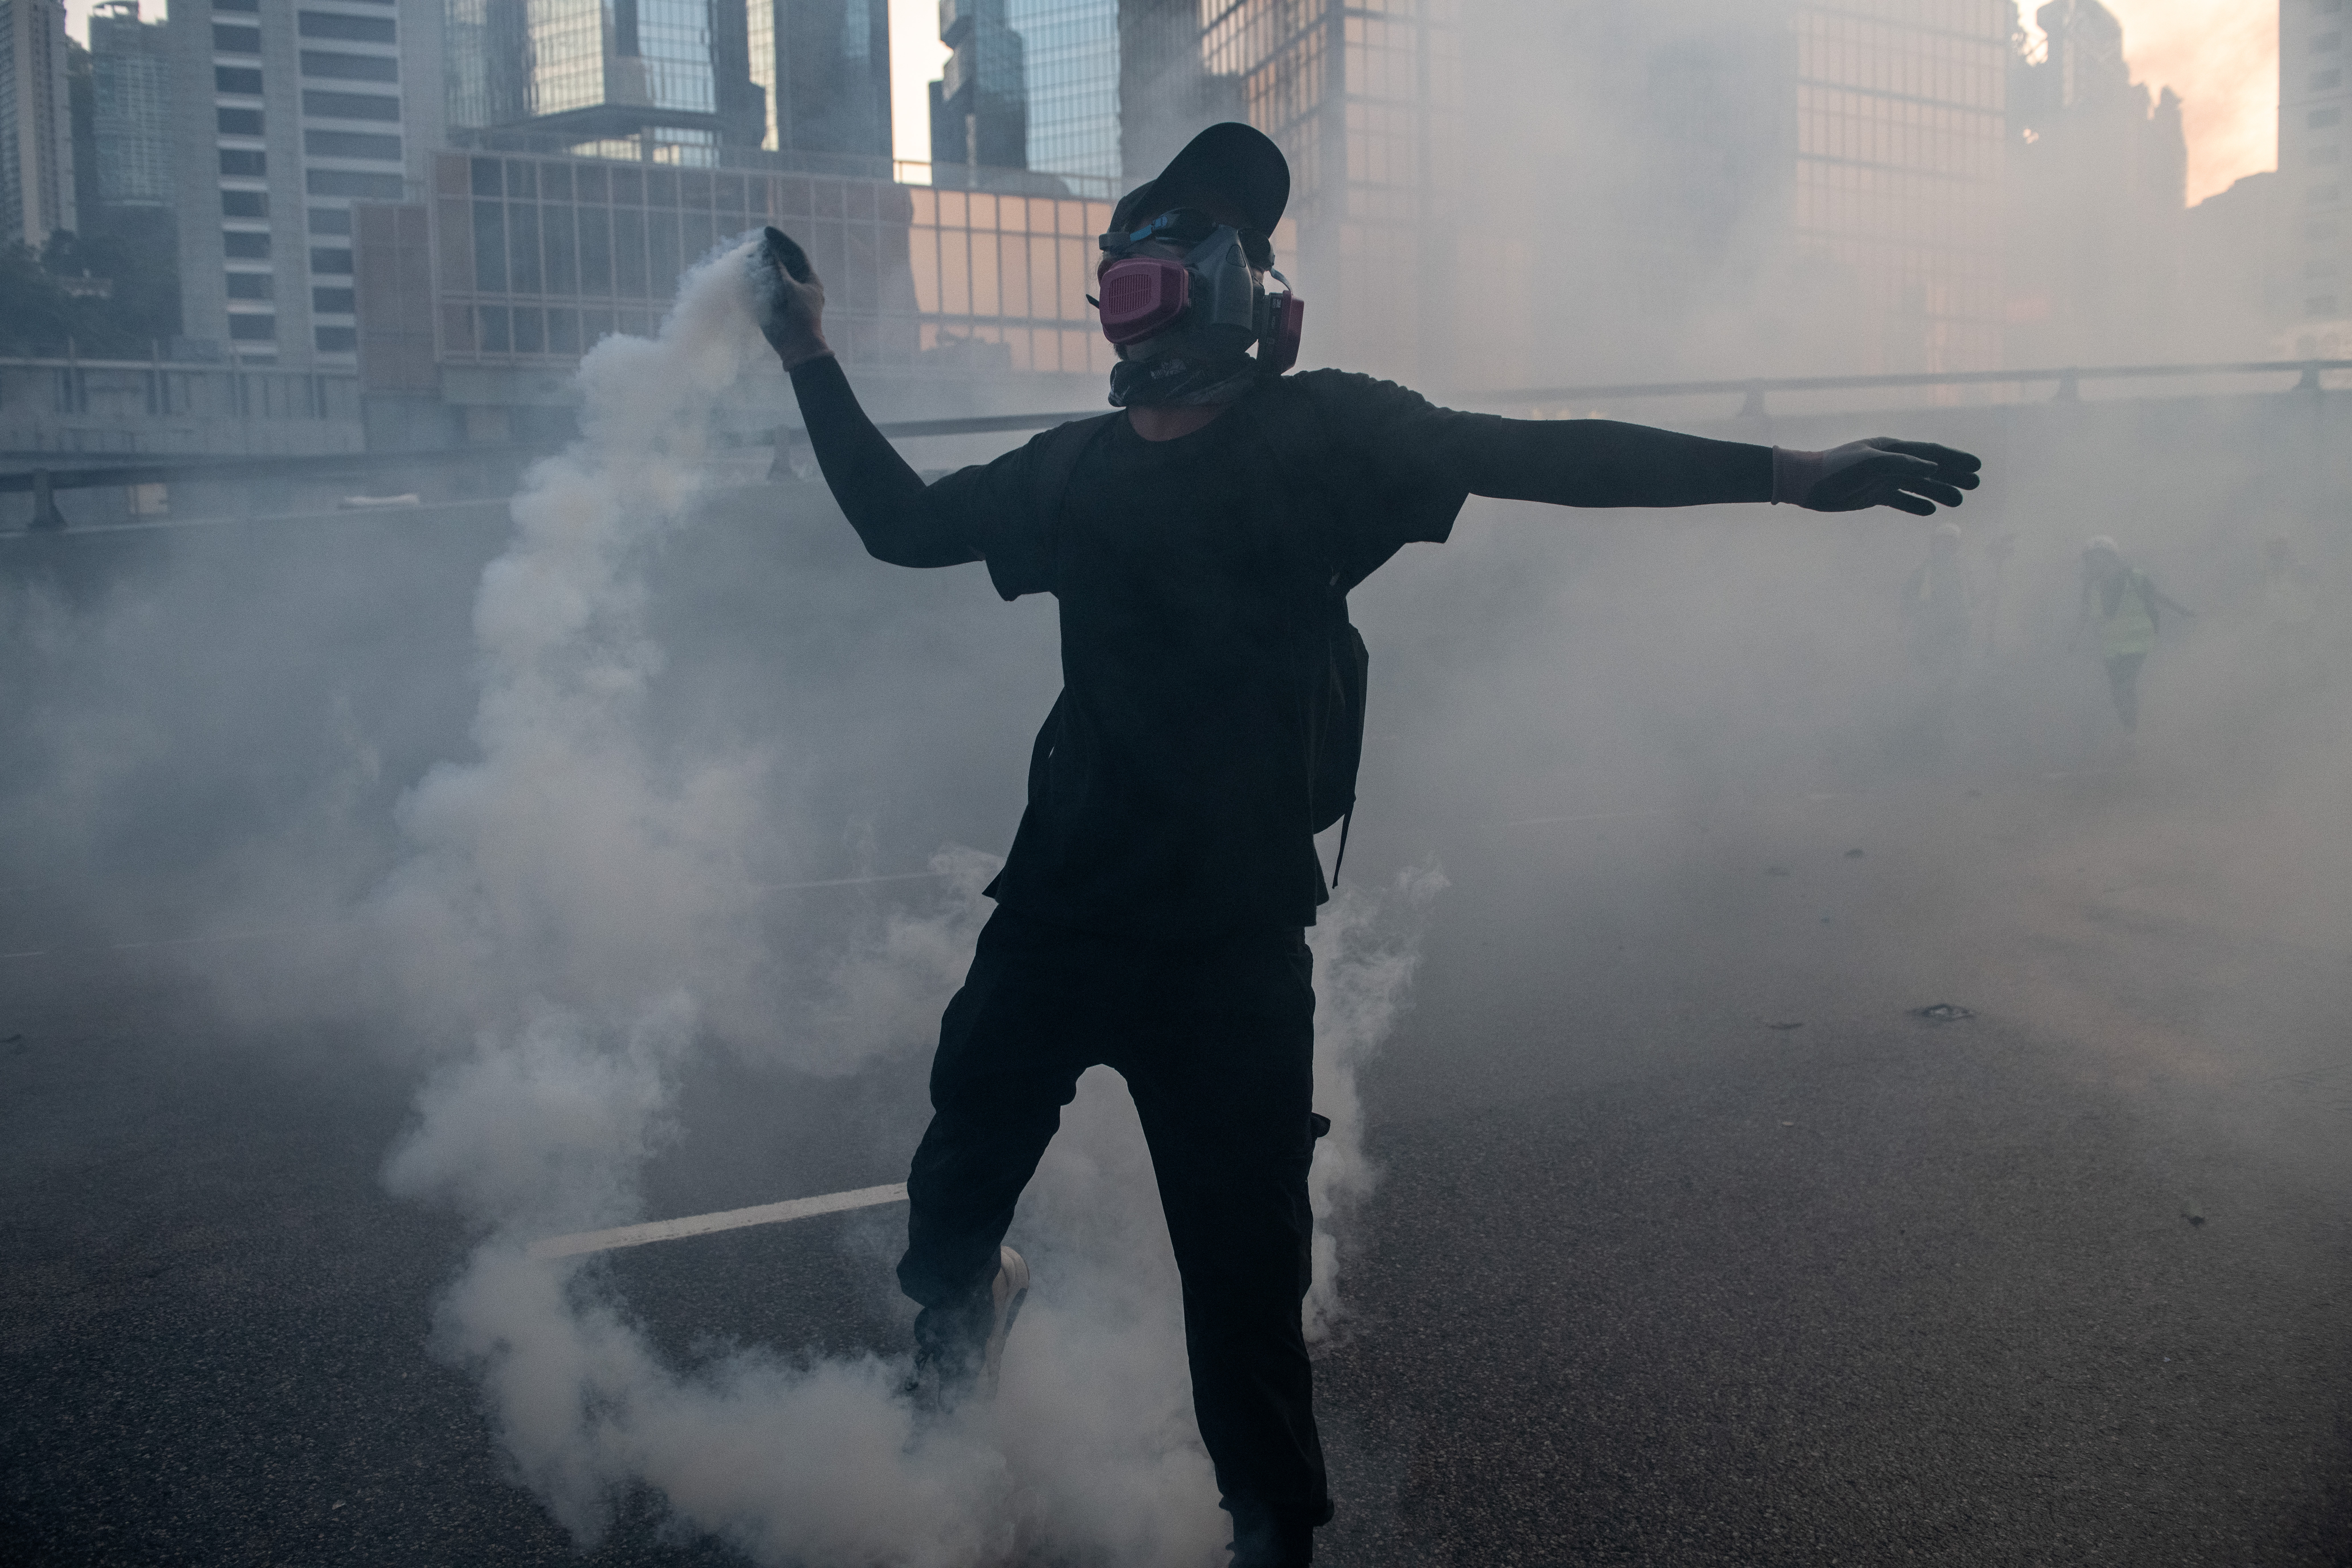 A pro-democracy protester throws a police teargas cartridge back at police officers in the Central Government Offices on September 15, 2019 in Hong Kong, China.